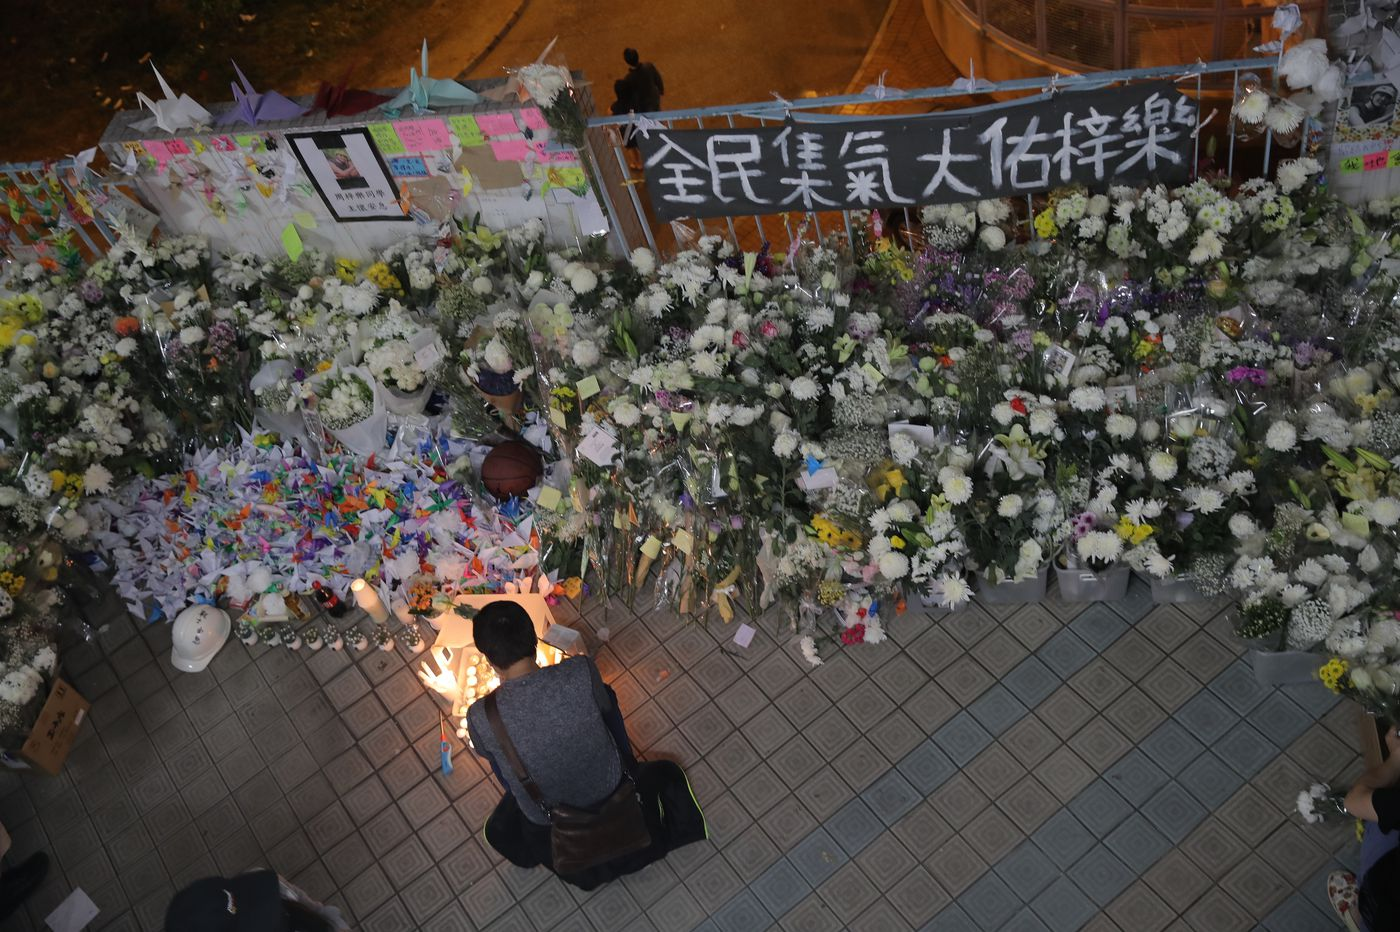 Hong Kong student's death fuels more anger against police